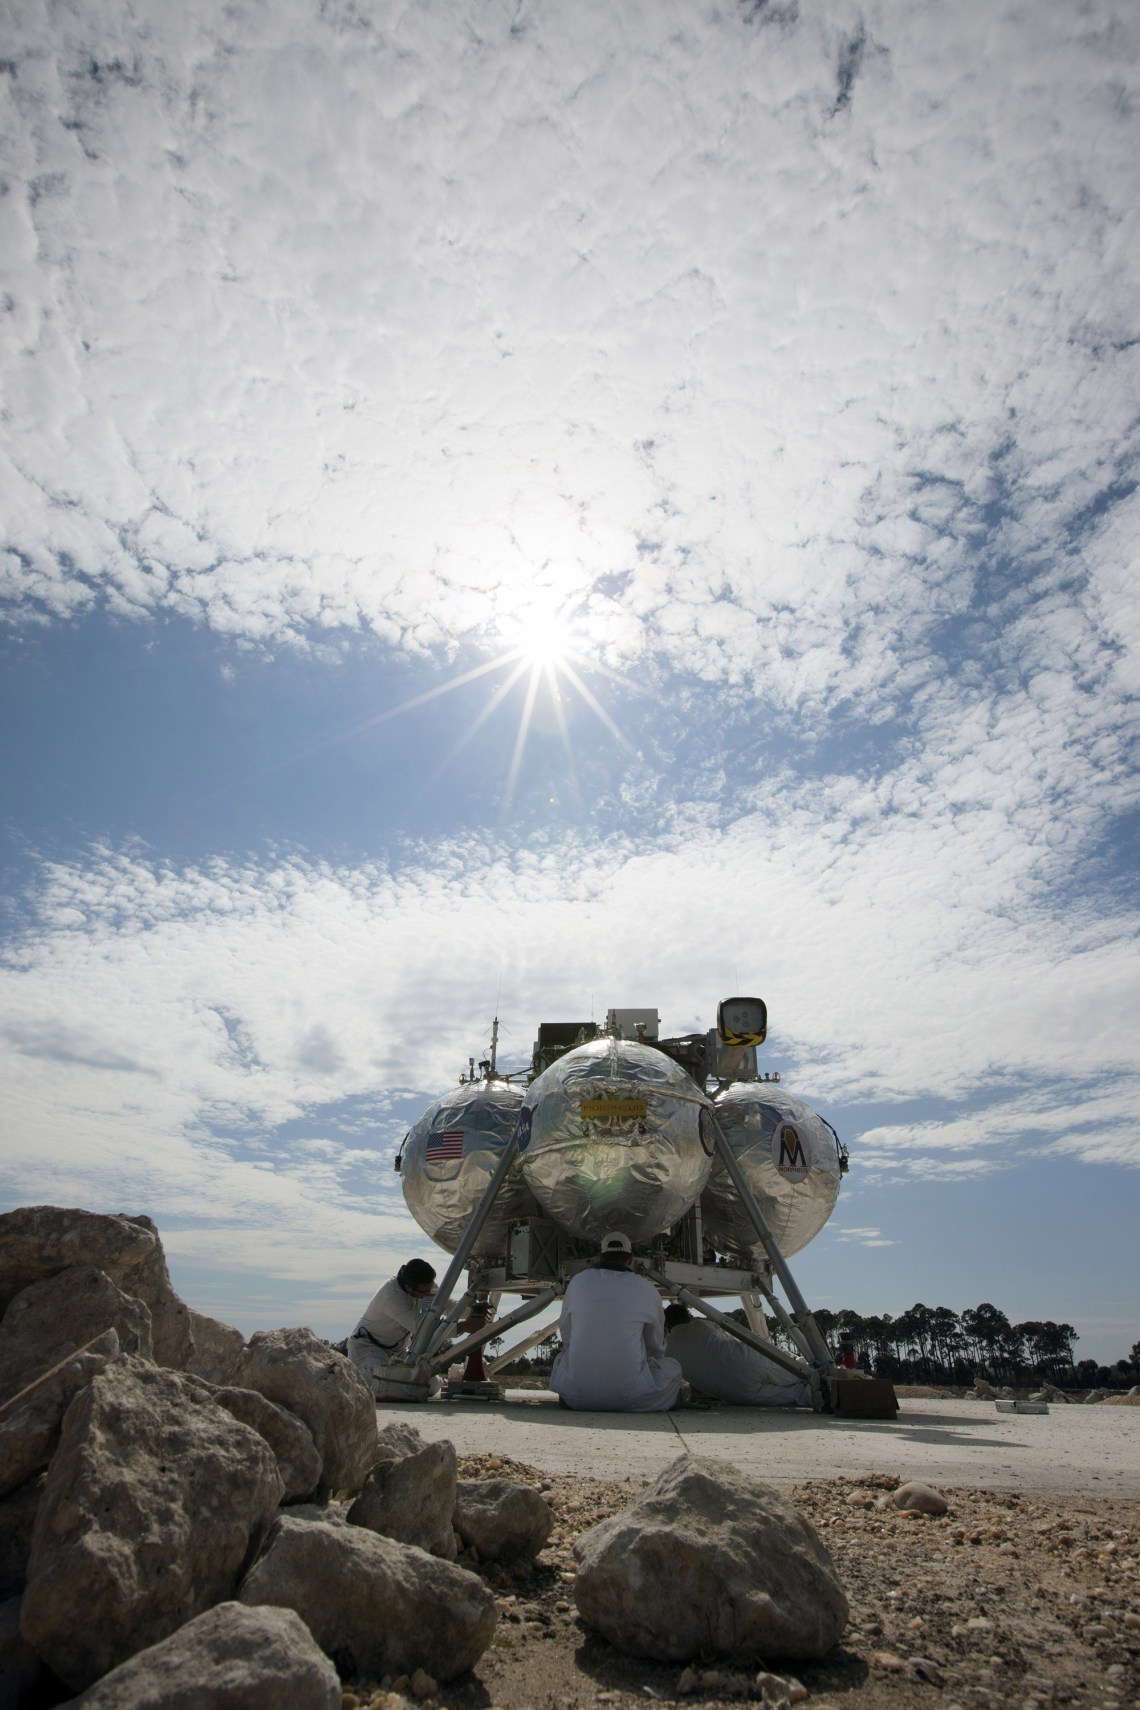 The Project Morpheus prototype lander during test at Kennedy Space Center in Florida. Credit: NASA/Kim Shiflett